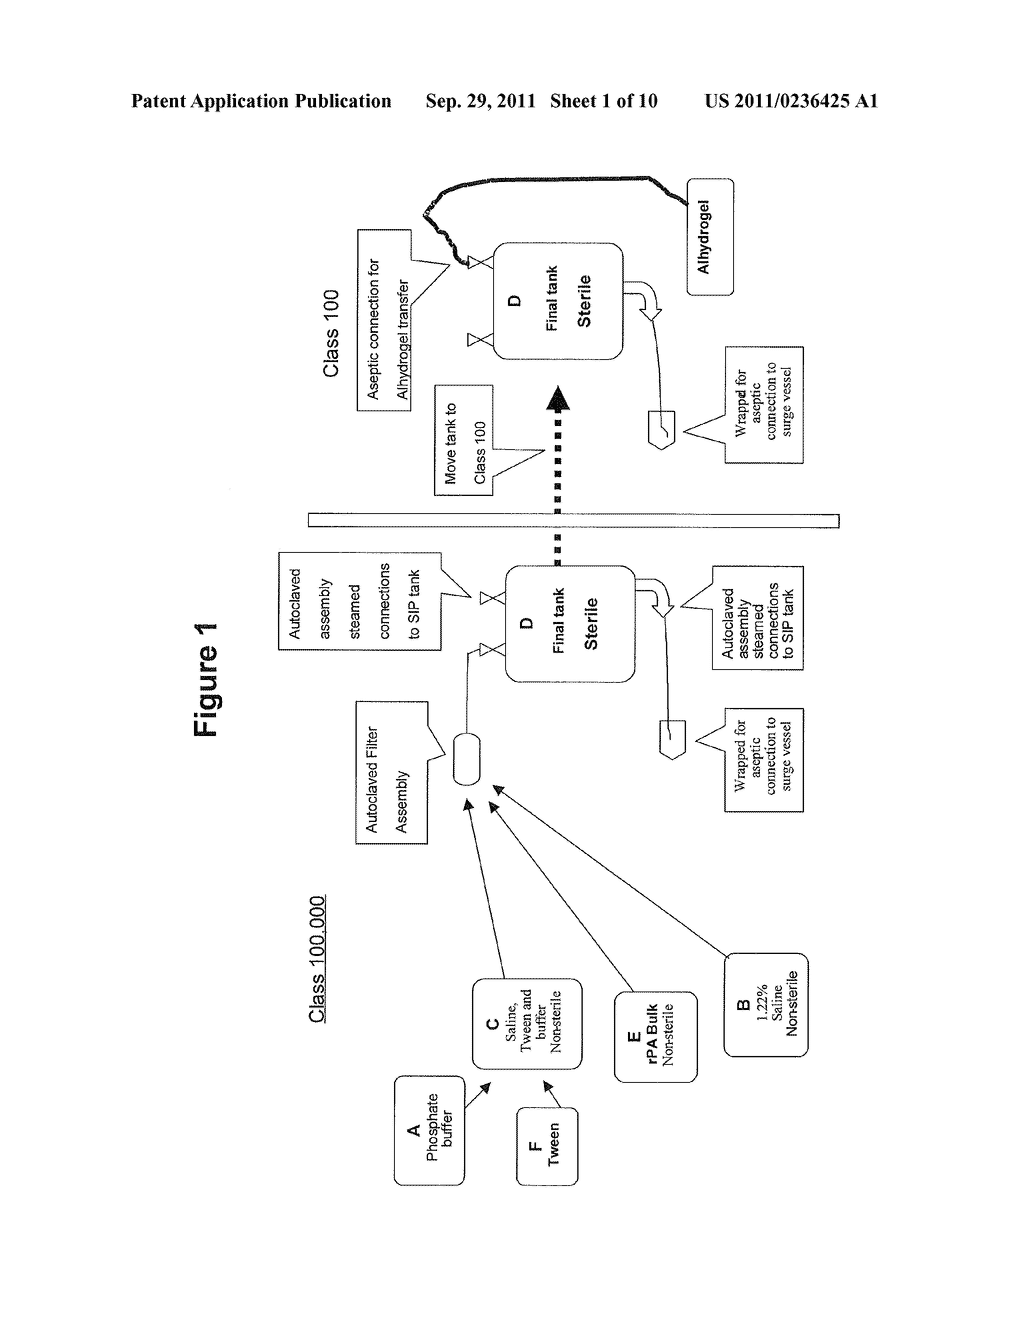 hight resolution of anthrax vaccine formulation and uses thereof diagram schematic and image 02